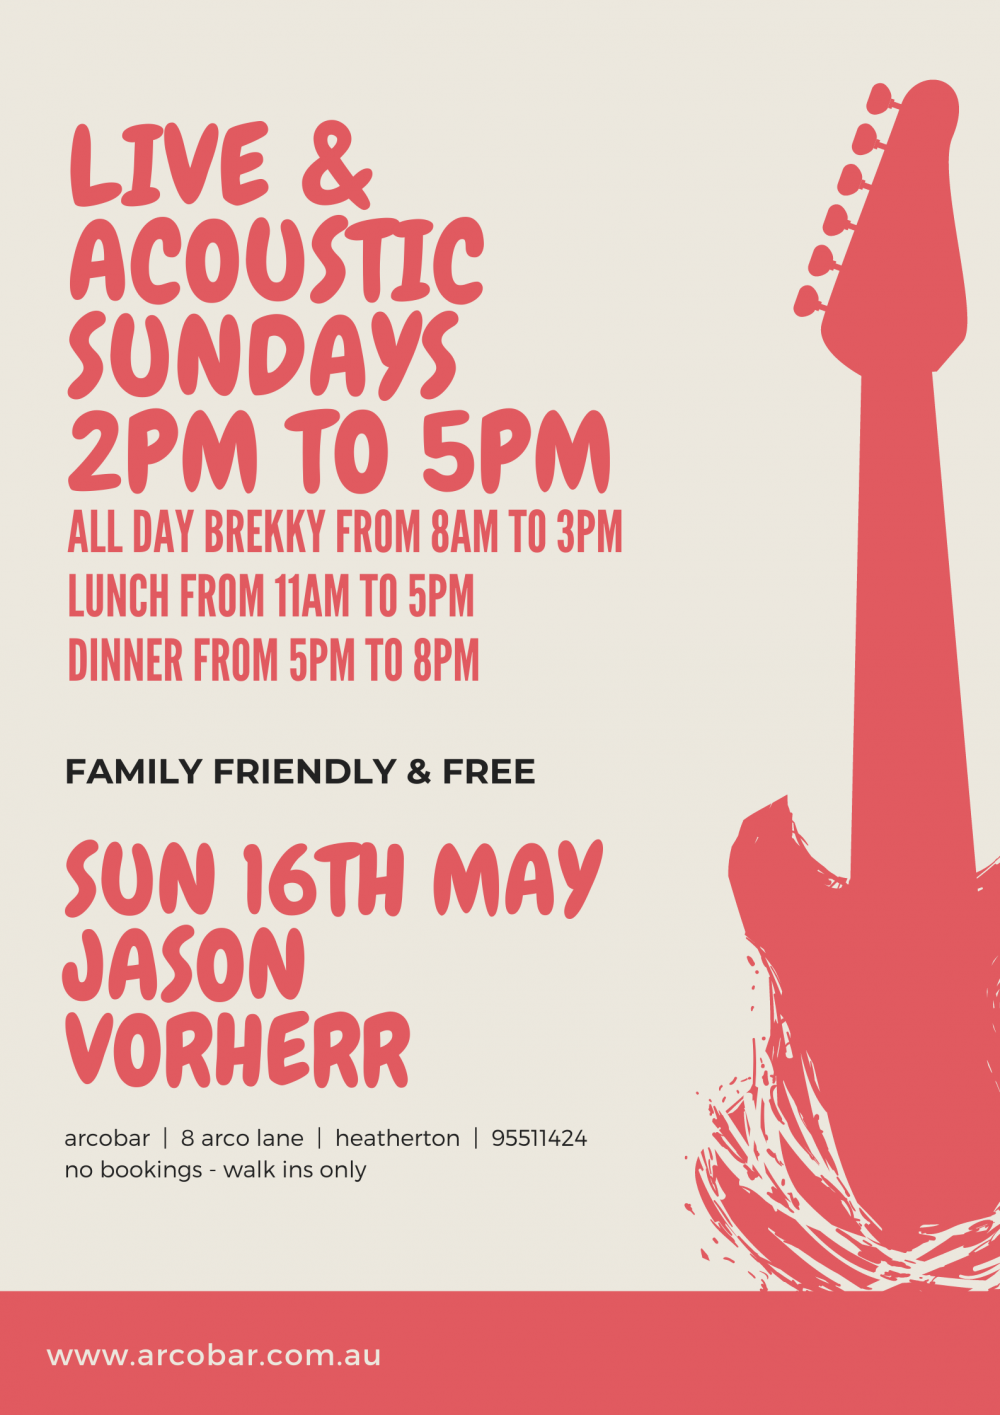 Jason Vorherr (Daryl Braithwaite Band), Solo, Free, Live & Acoustic - Sunday Session